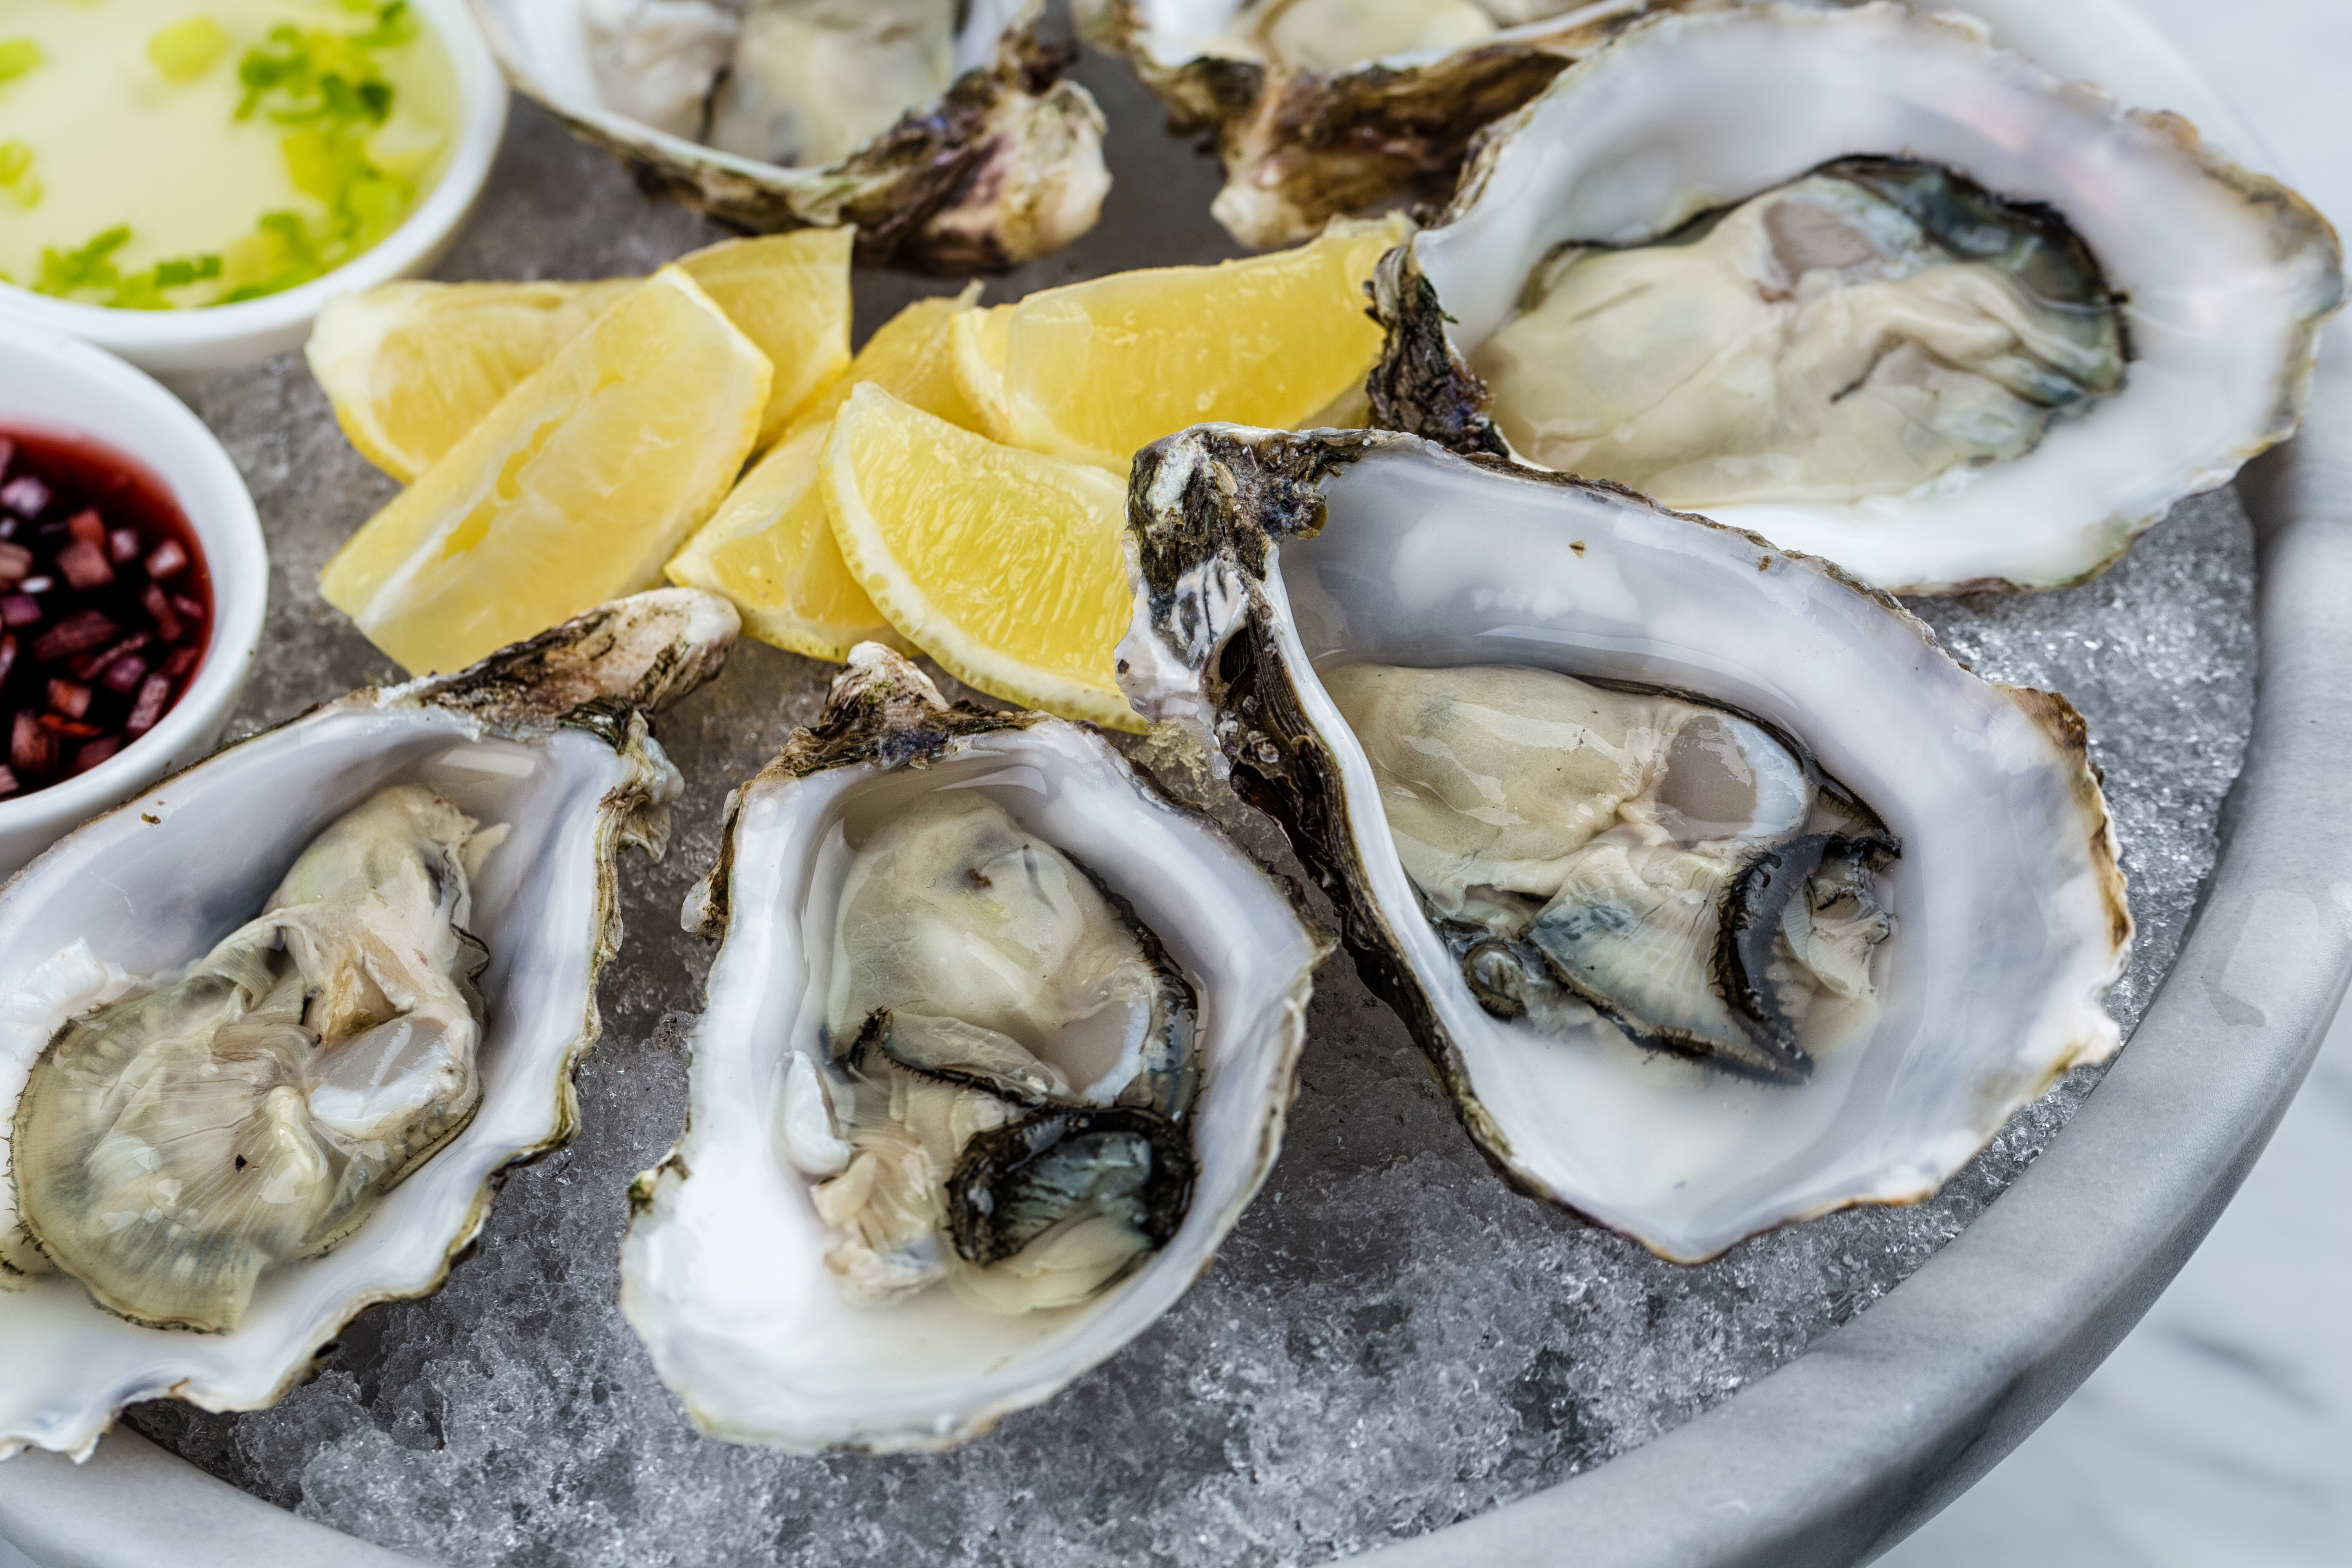 A aluminum tray of filled with ice, lemon wedges, and various sauces contains four gleaming oysters